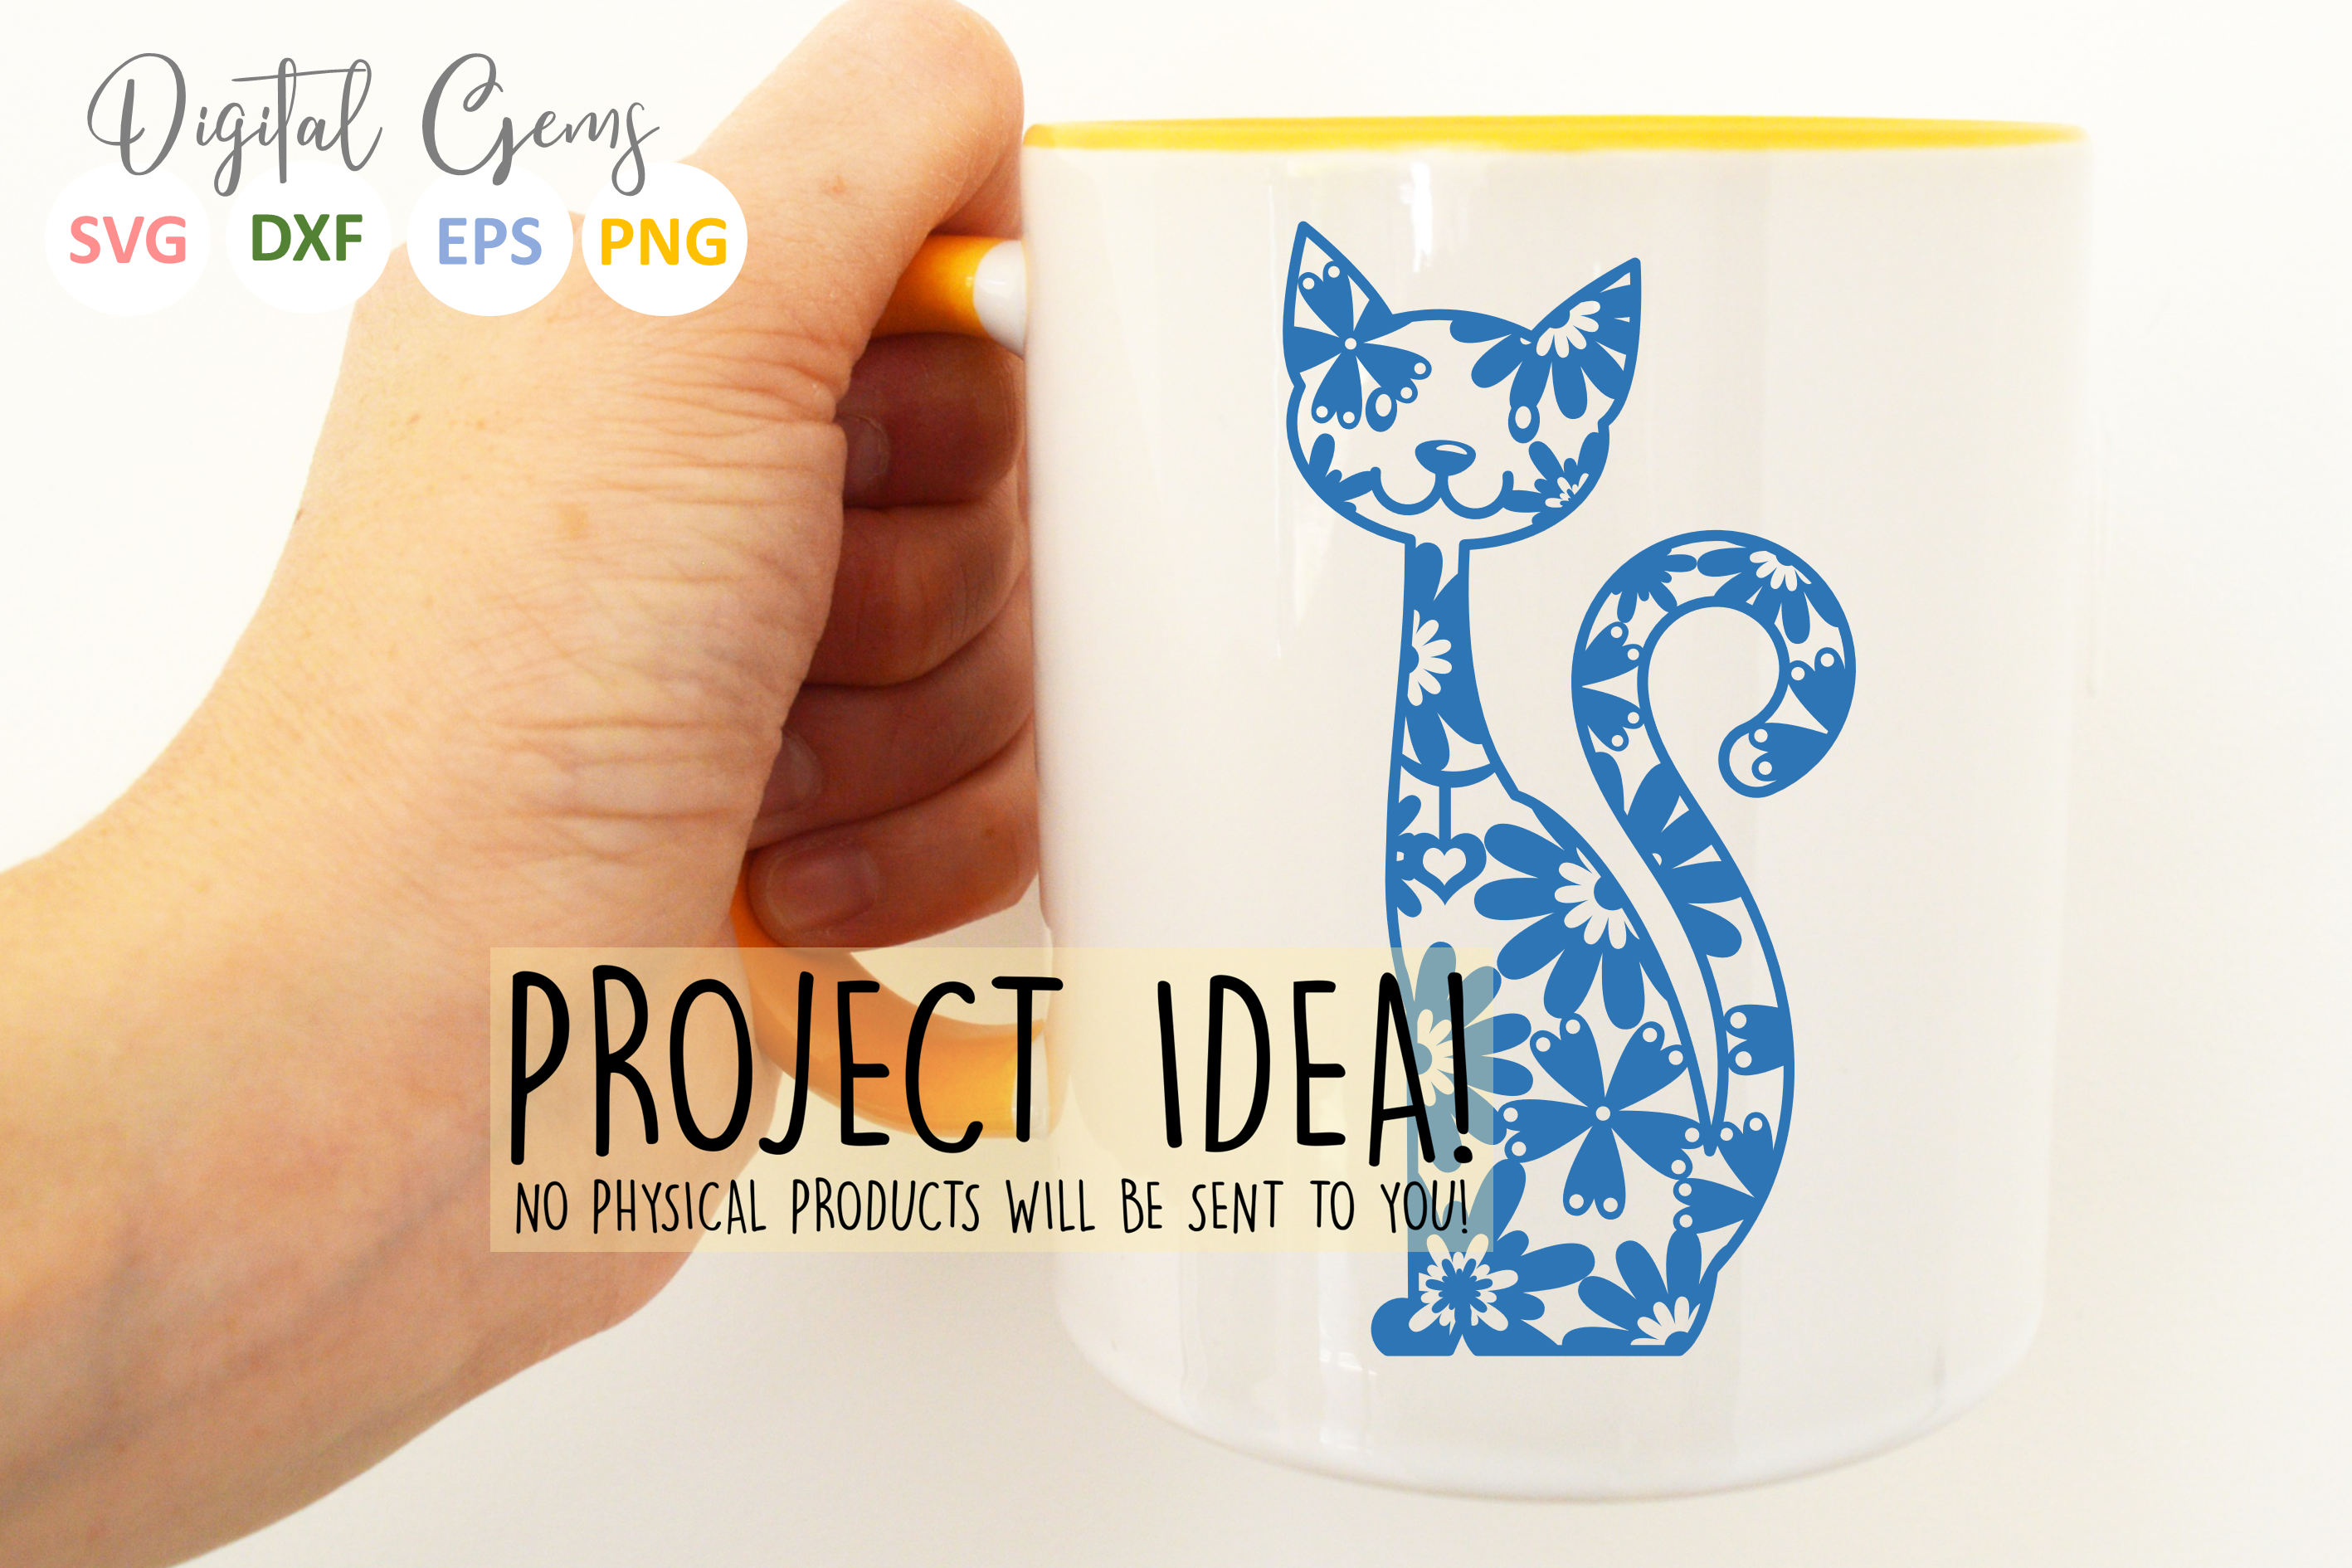 Cat paper cut SVG / DXF / EPS files example image 6